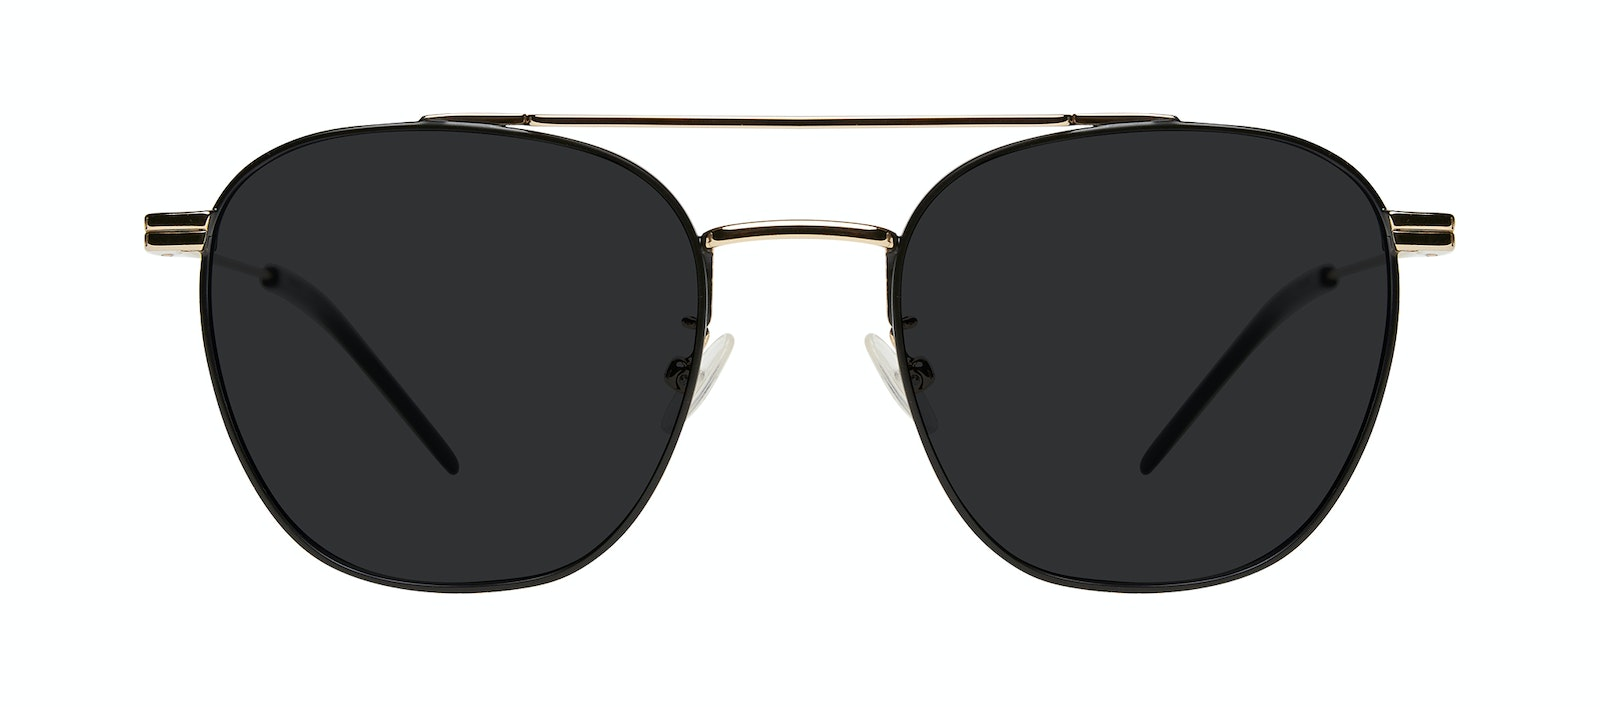 Affordable Fashion Glasses Aviator Sunglasses Men Miami Deep Gold Front